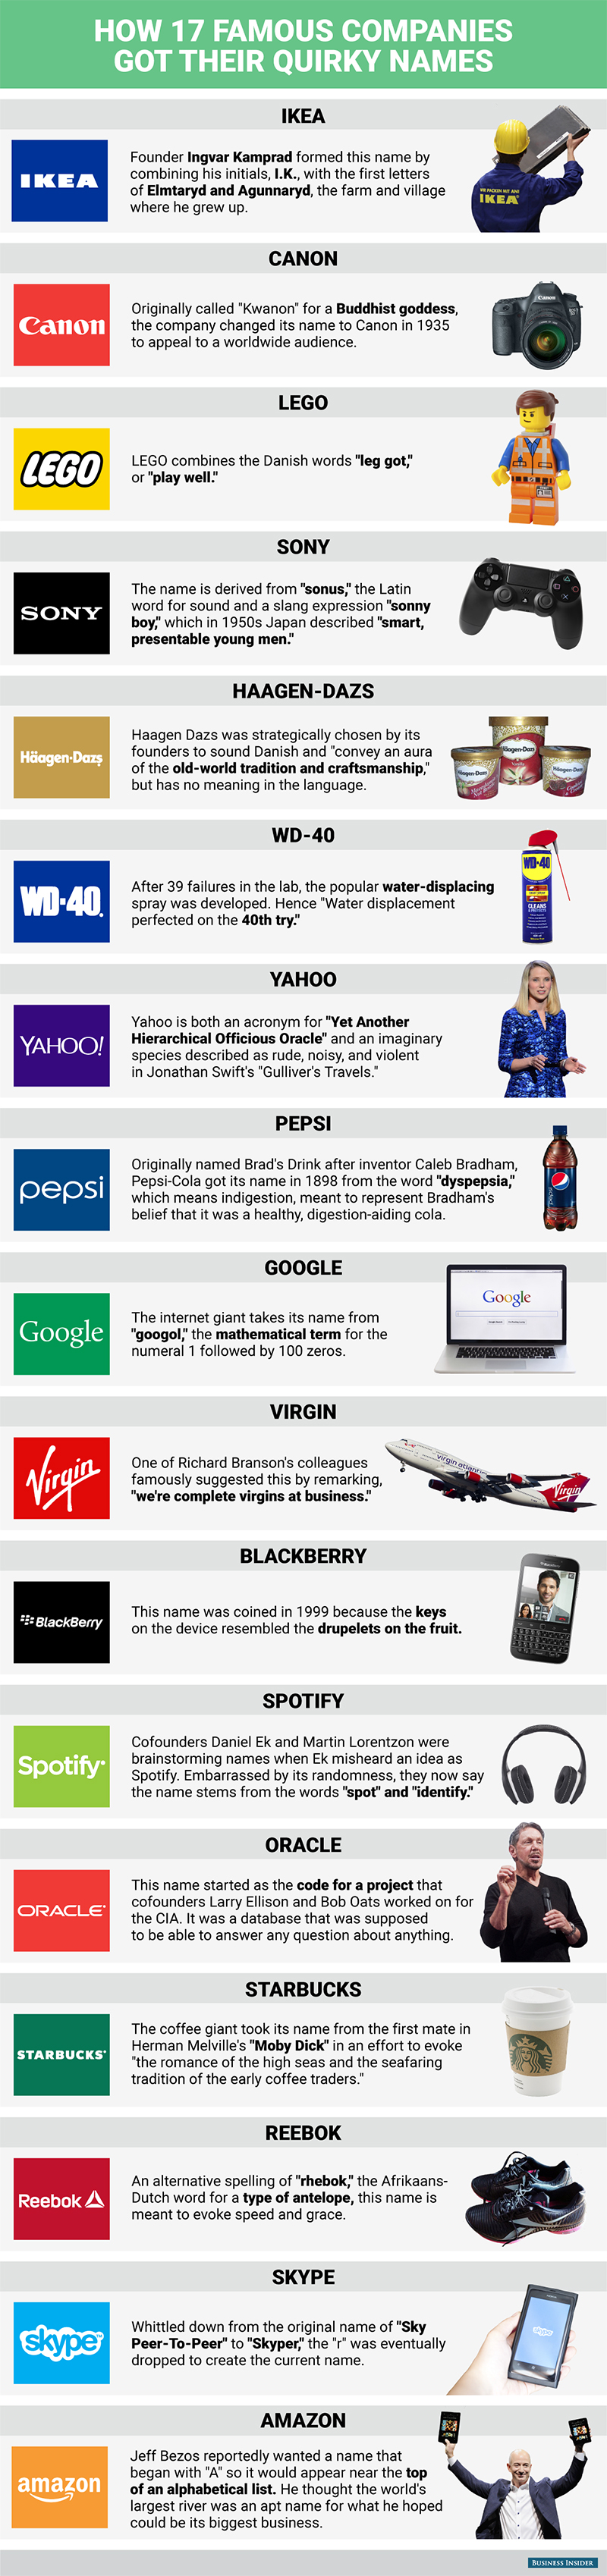 Naming A Business How  Famous Companies Got Their Quirky Names